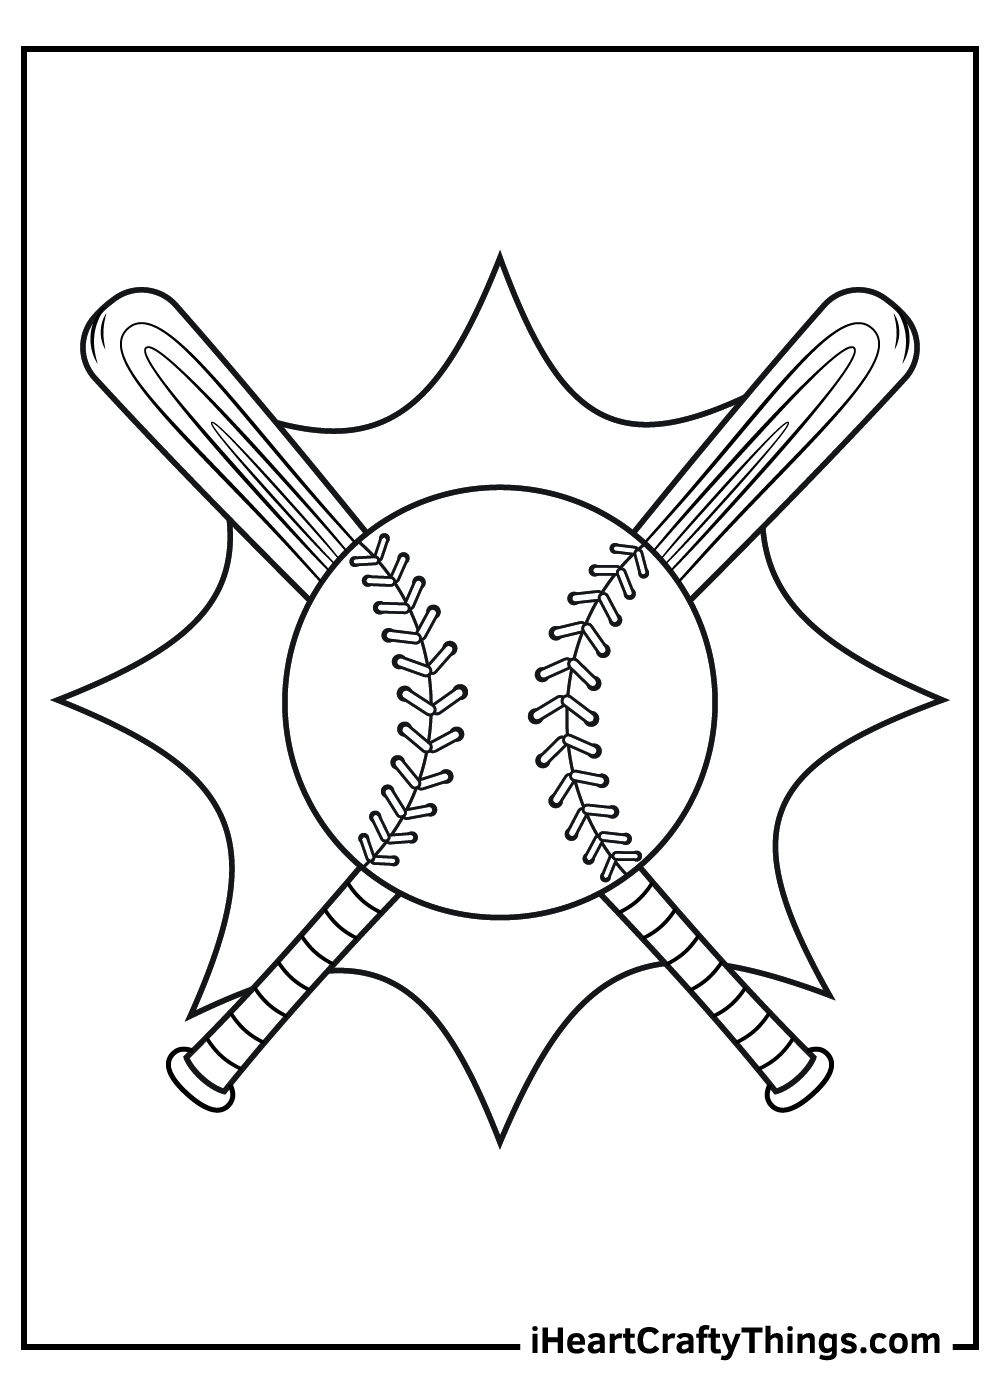 free baseball coloring pages